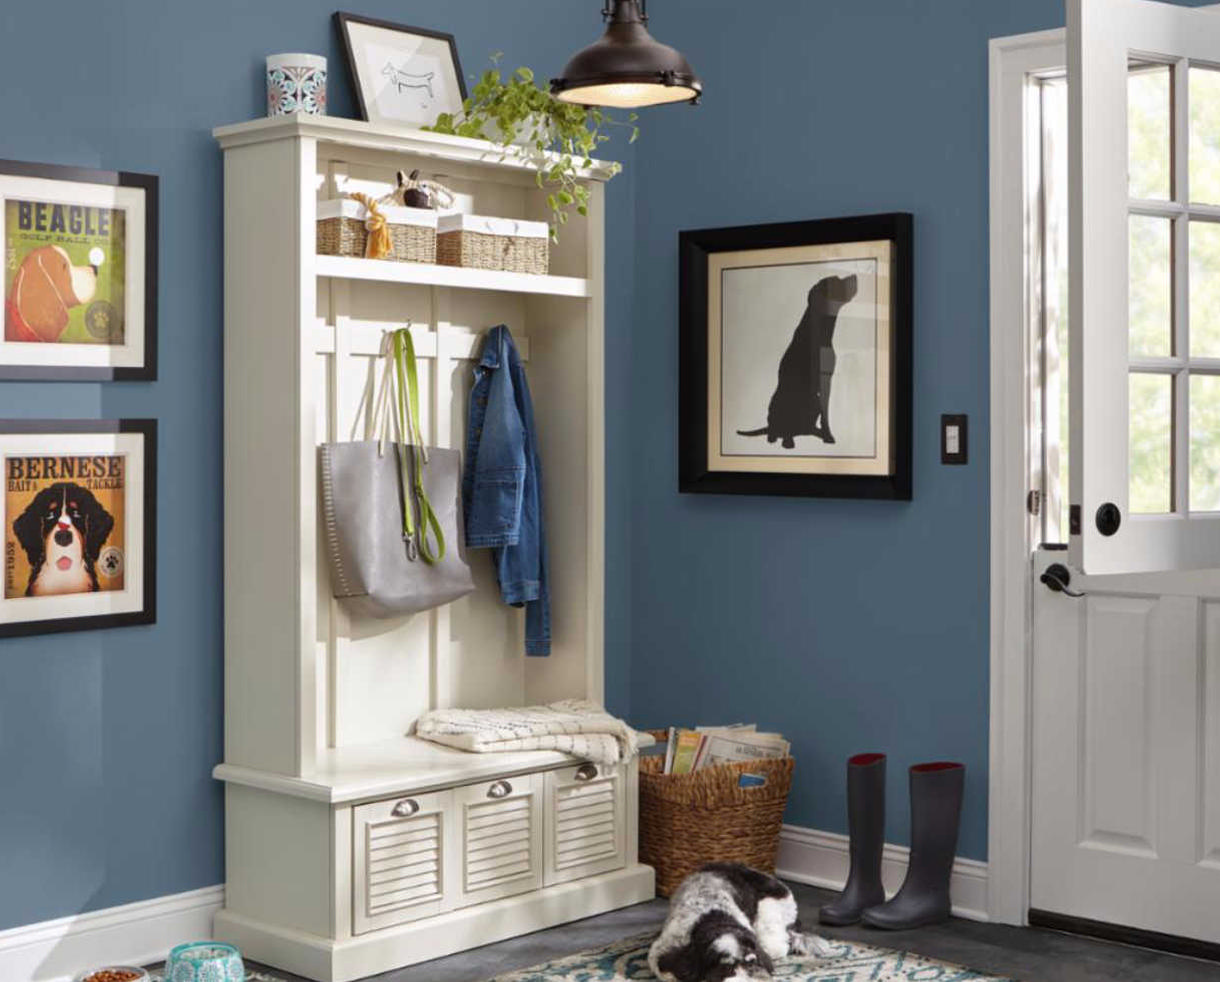 Deal: The Home Depot: Update Your Space With Up to 30% Off